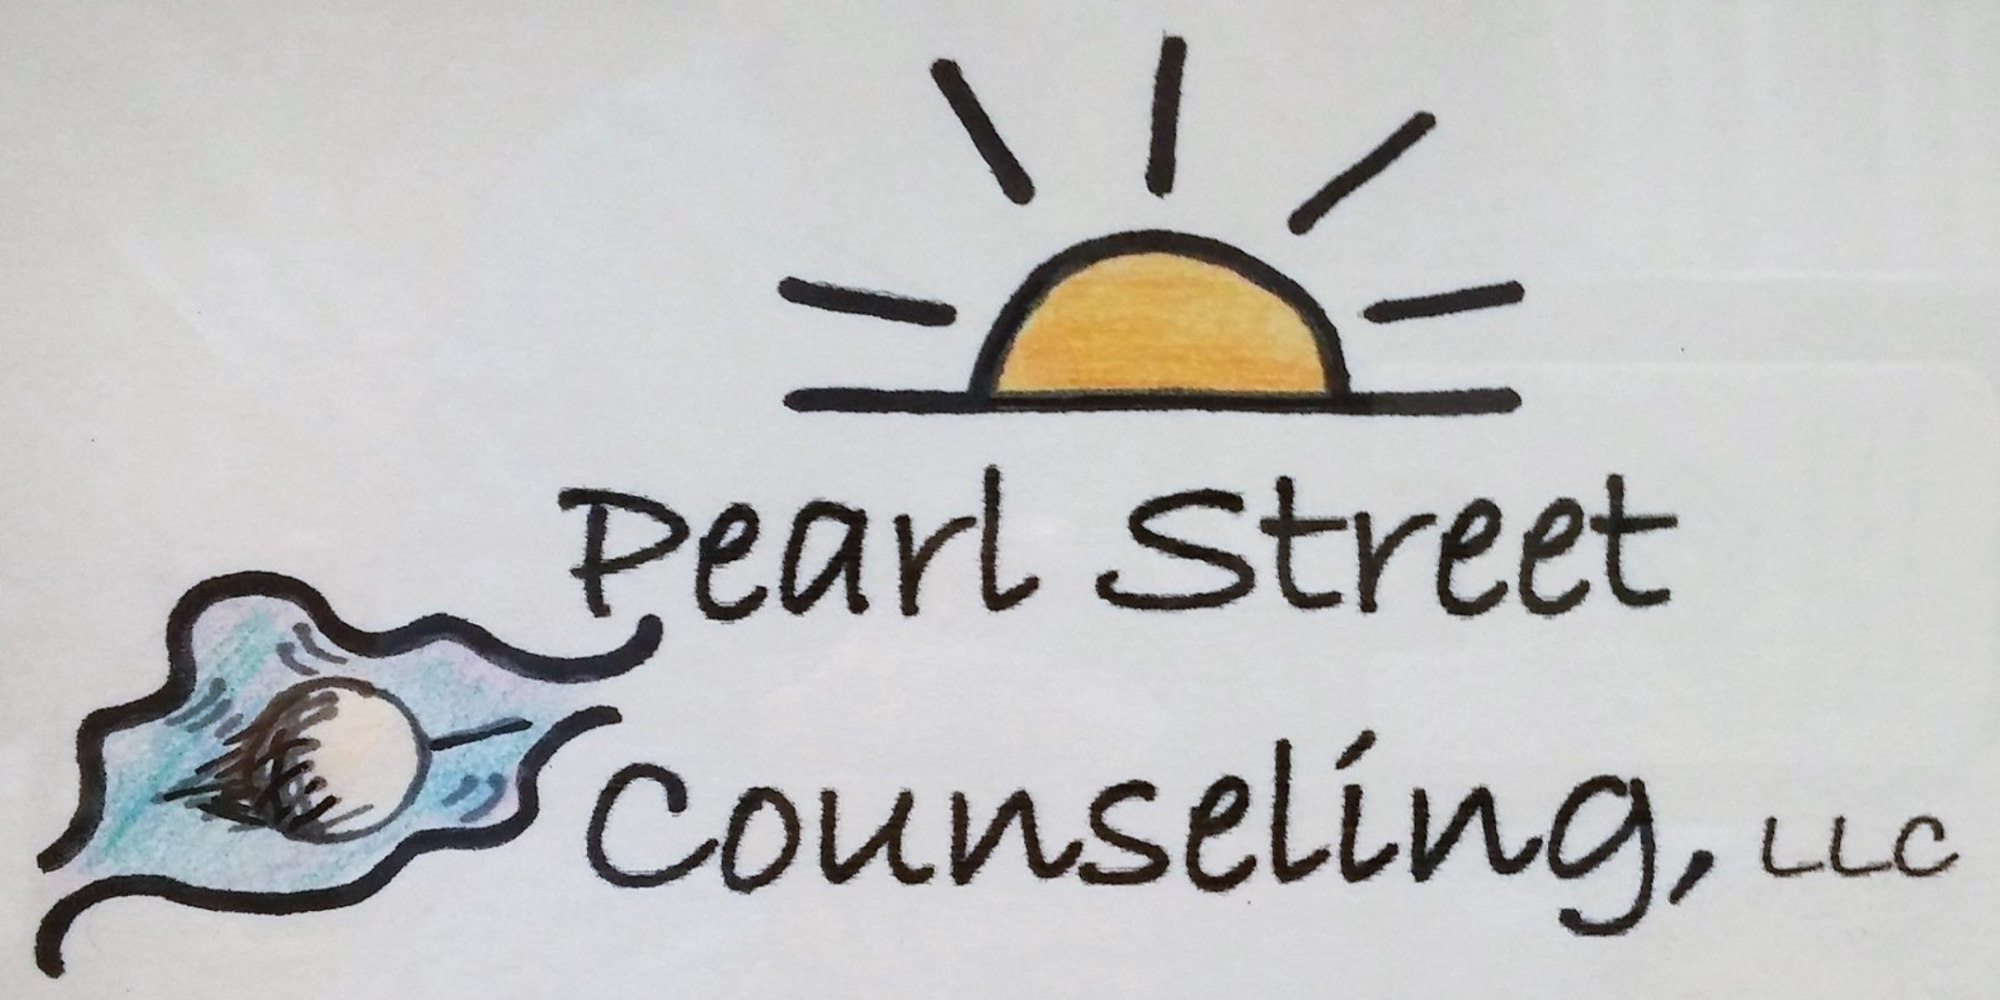 Pearl Street Counseling